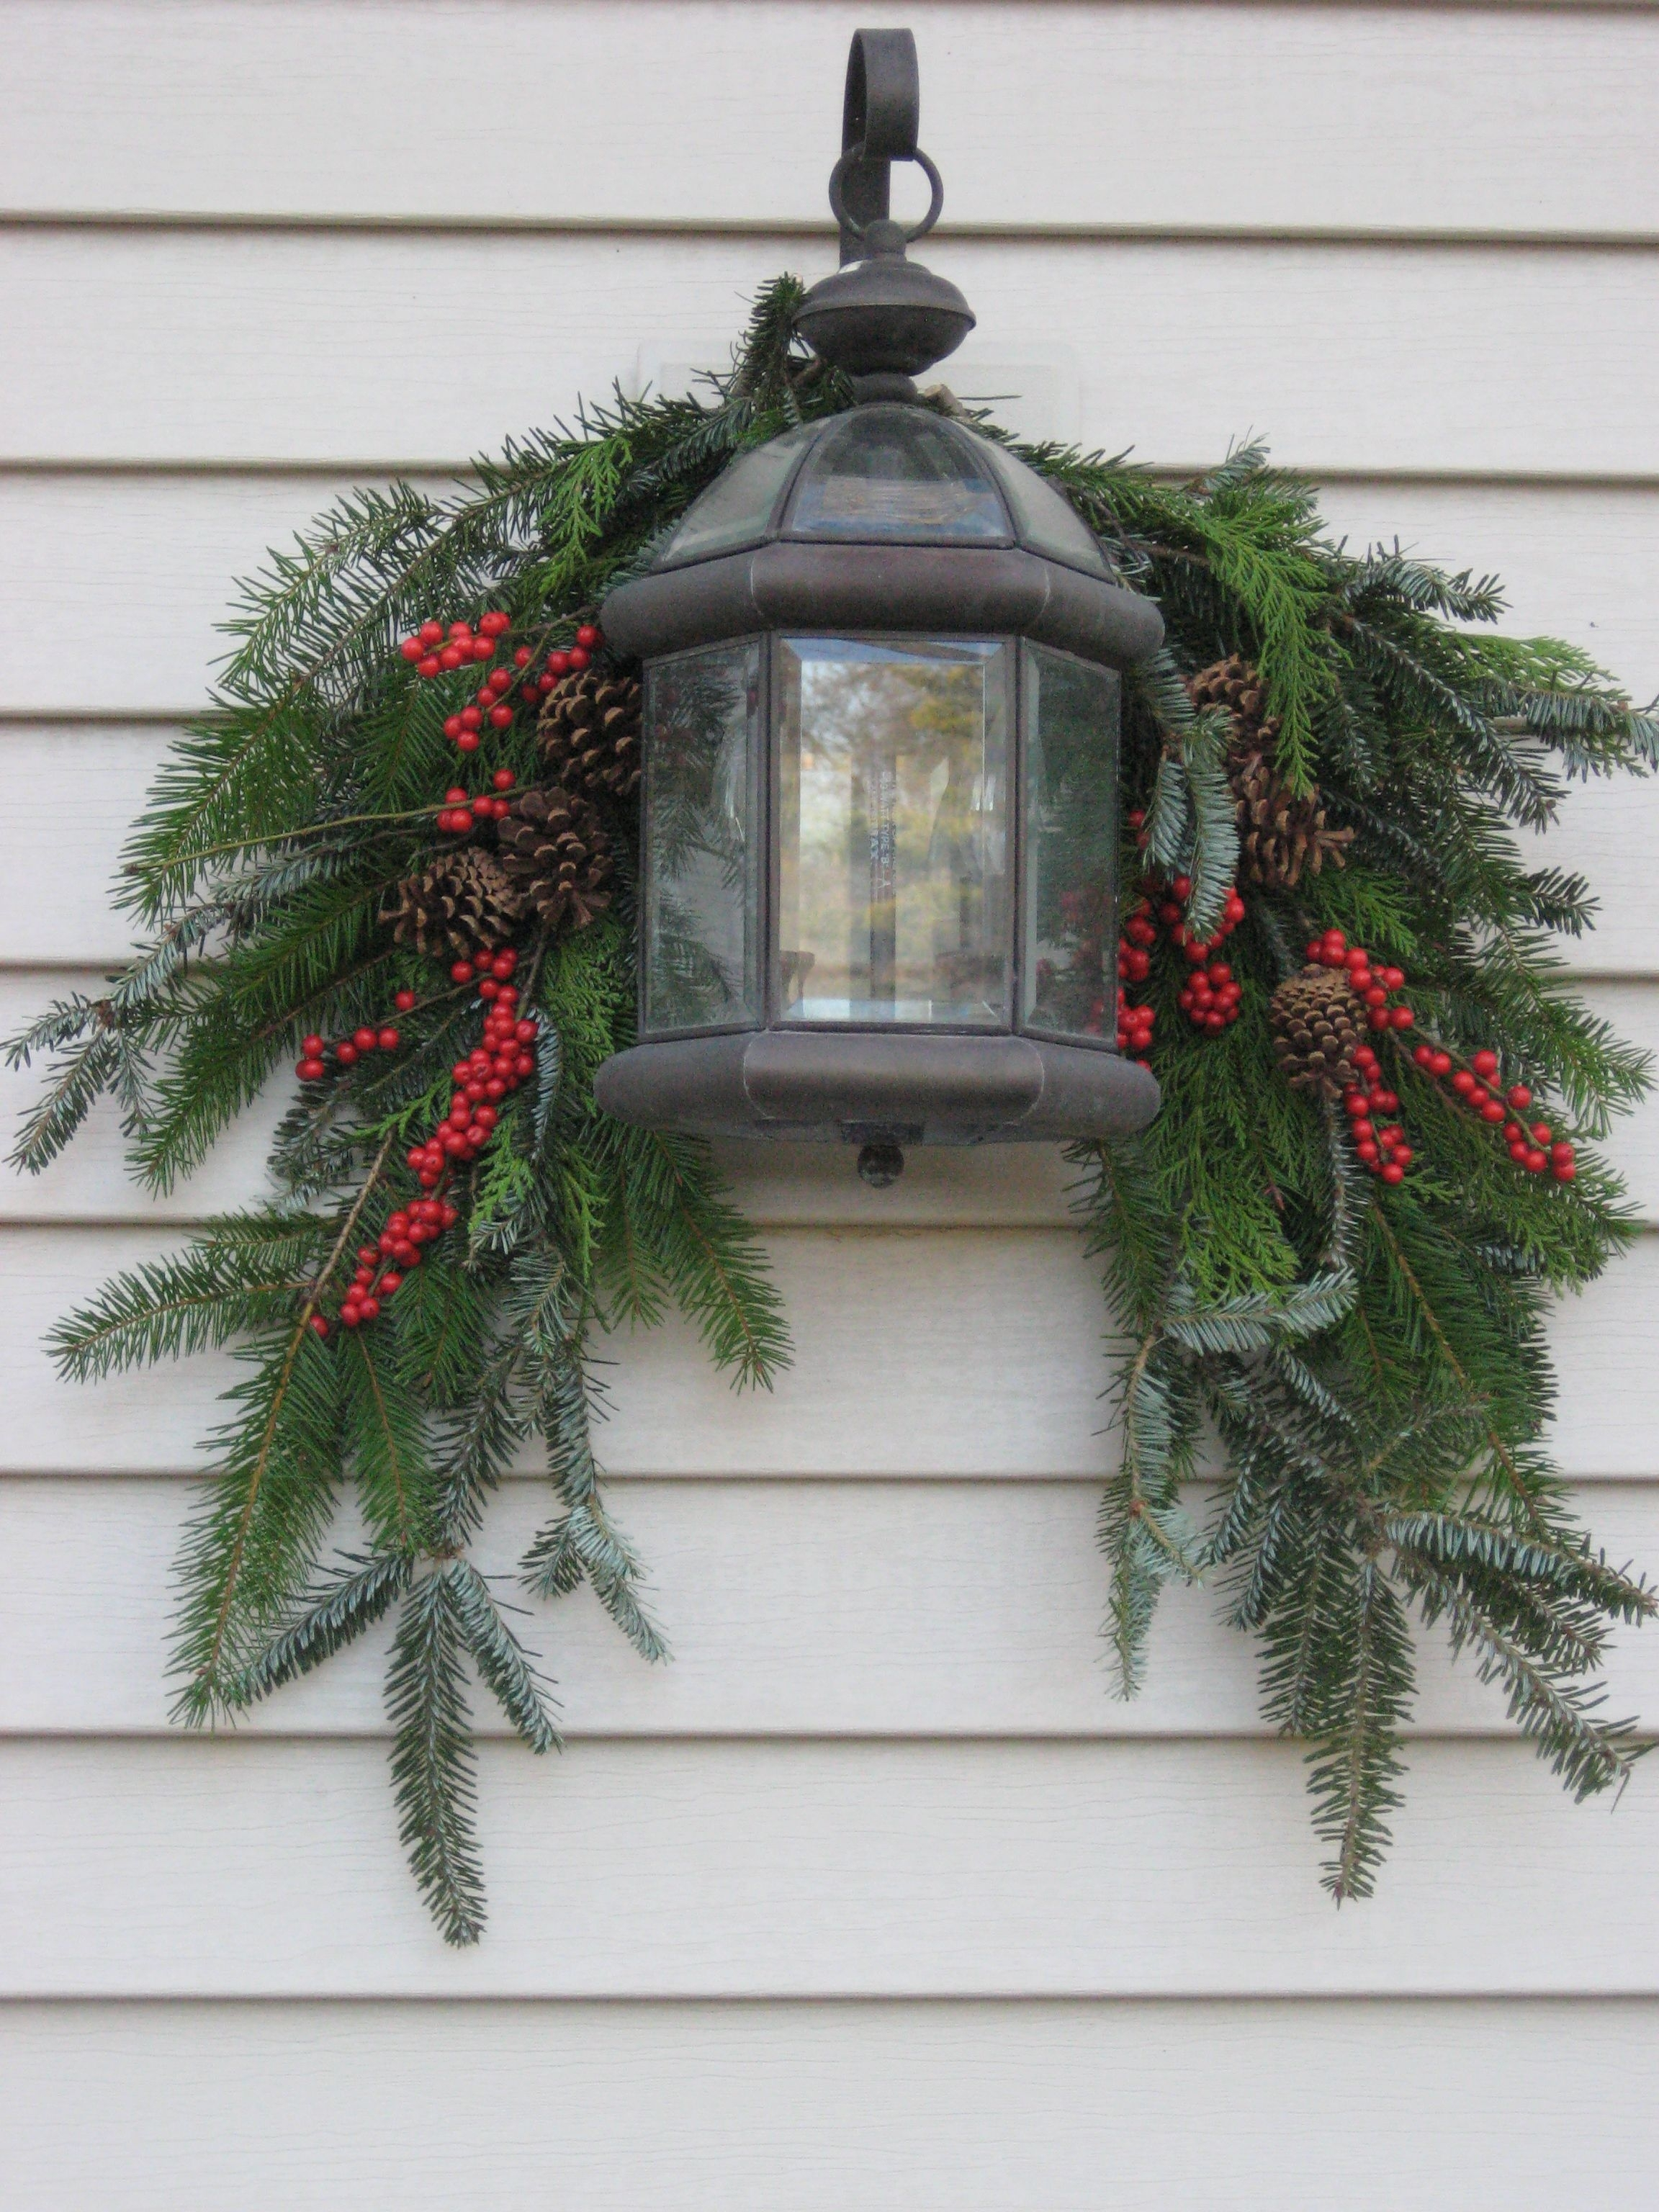 A Guide To Beautiful (And Not Tacky) Outdoor Holiday Decor In 2018 in Outdoor Lanterns for Christmas (Image 3 of 20)